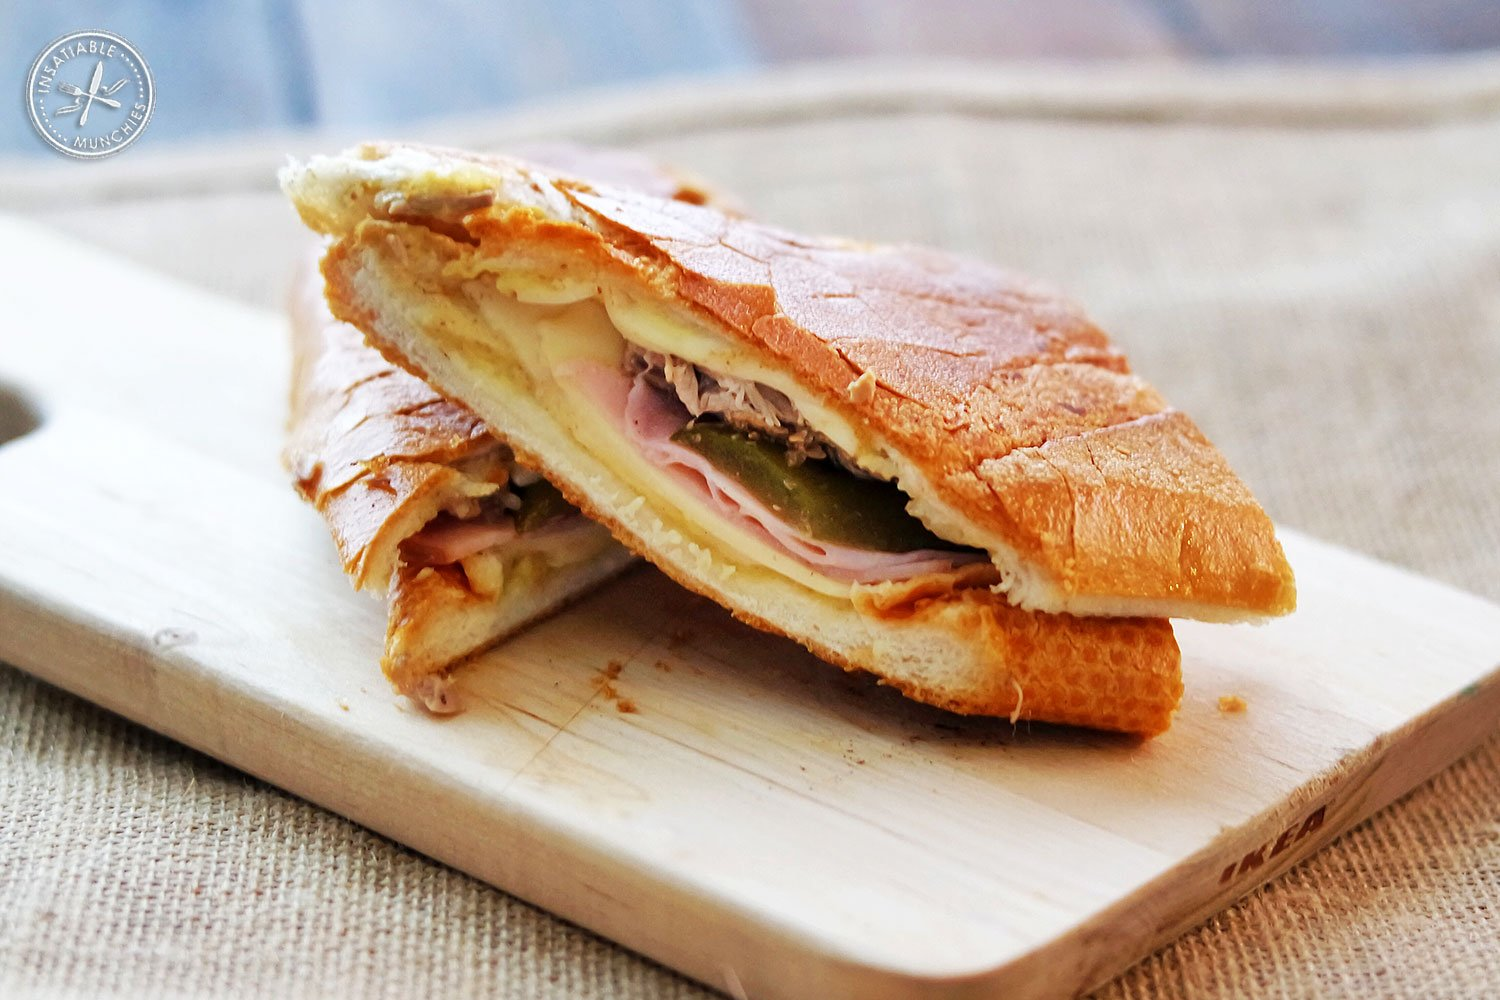 A cuban sandwich - mustard, swiss cheese, pickles ham, braised pork shoulder - is halved and sits on a wooden board.